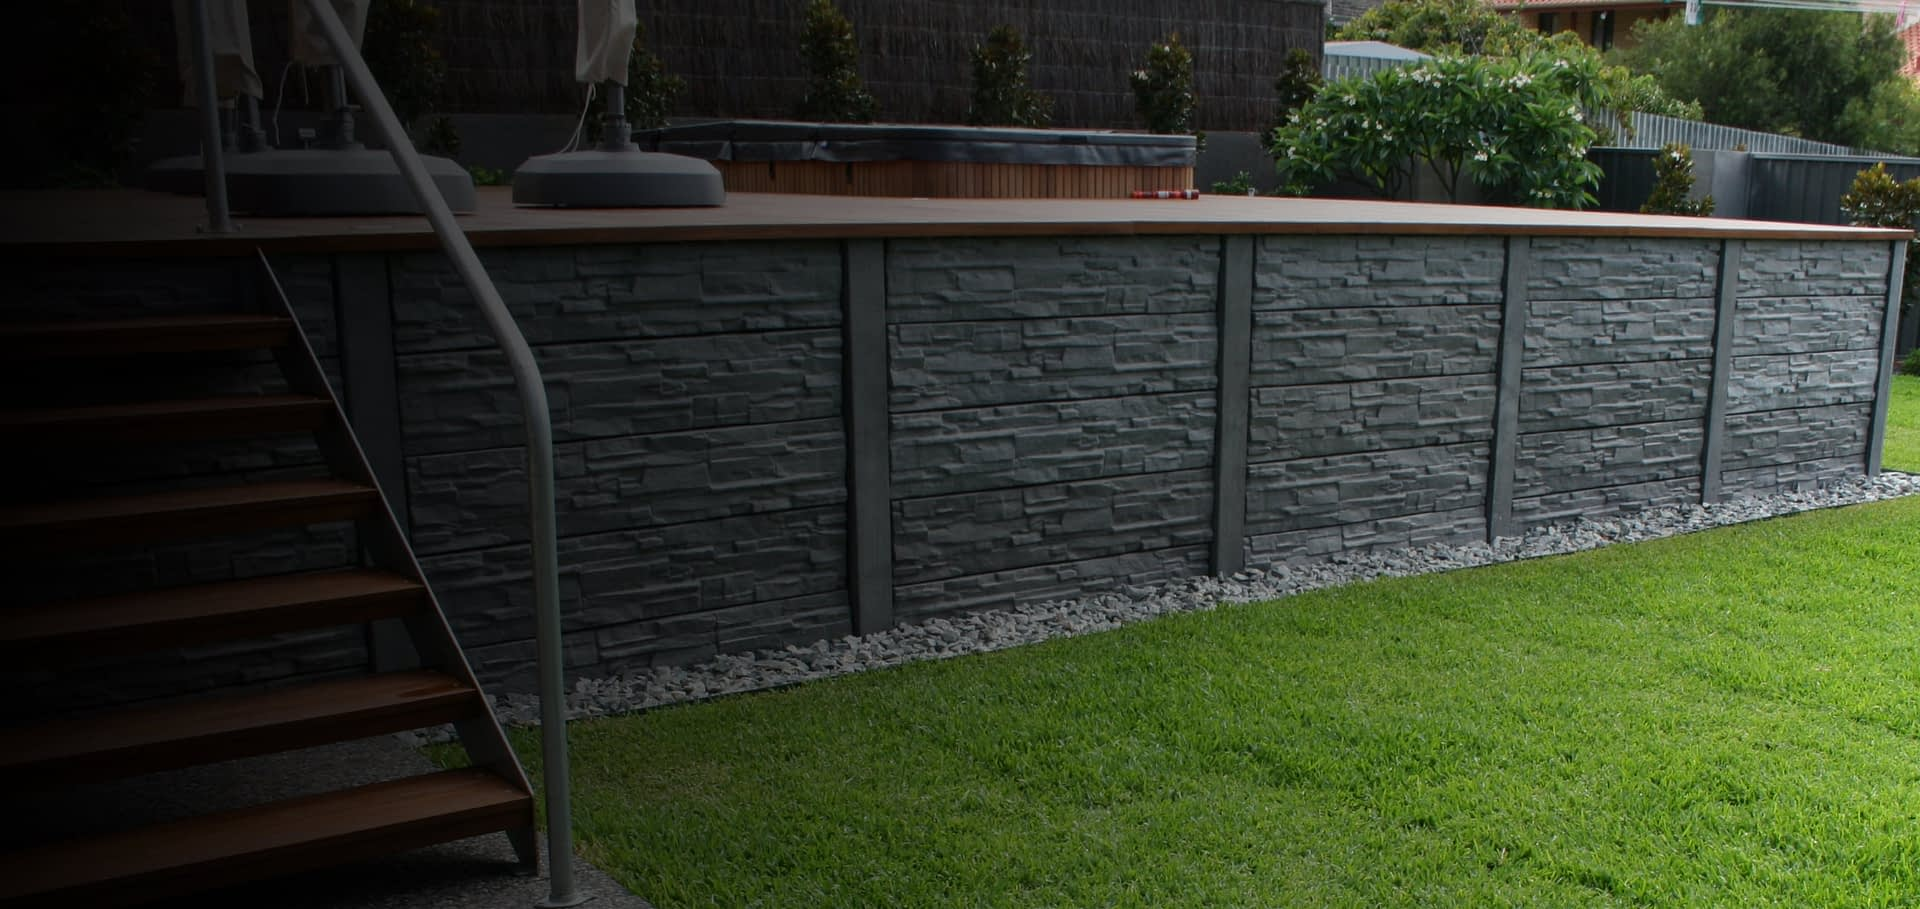 How much does it cost to build a retaining wall in 20 ...